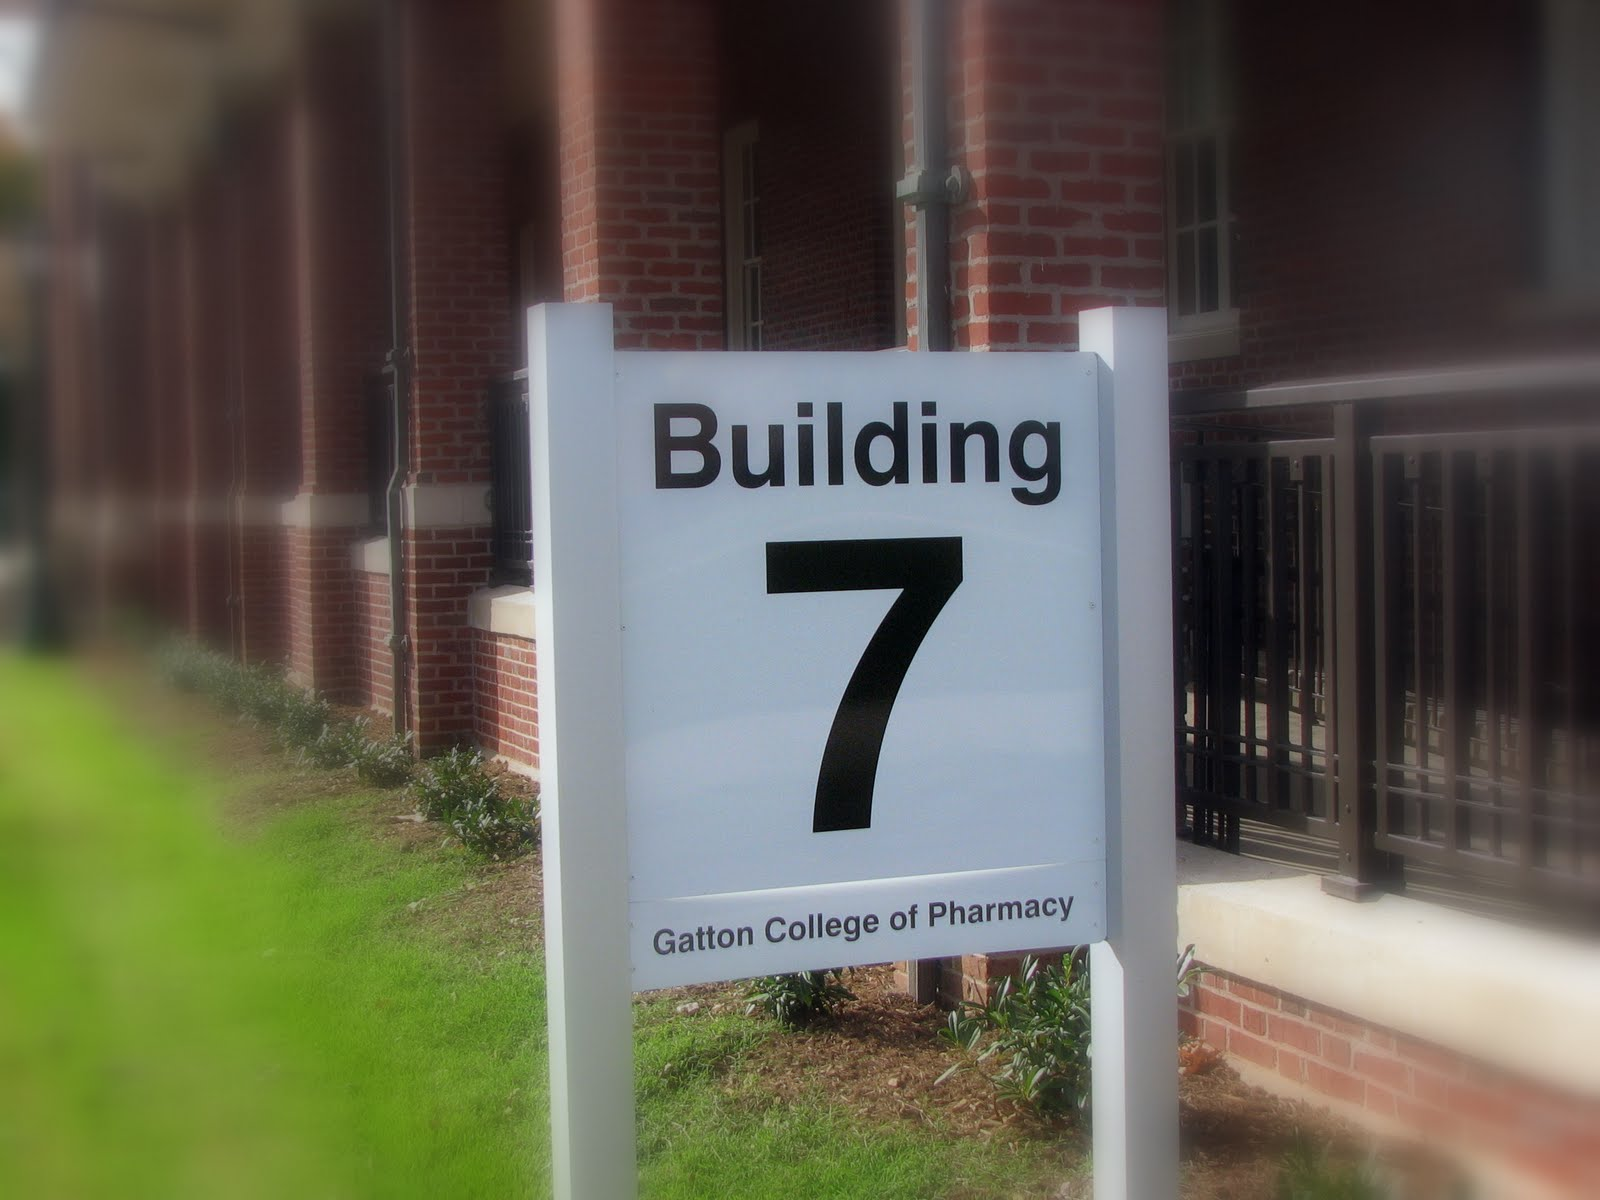 building 7 sign